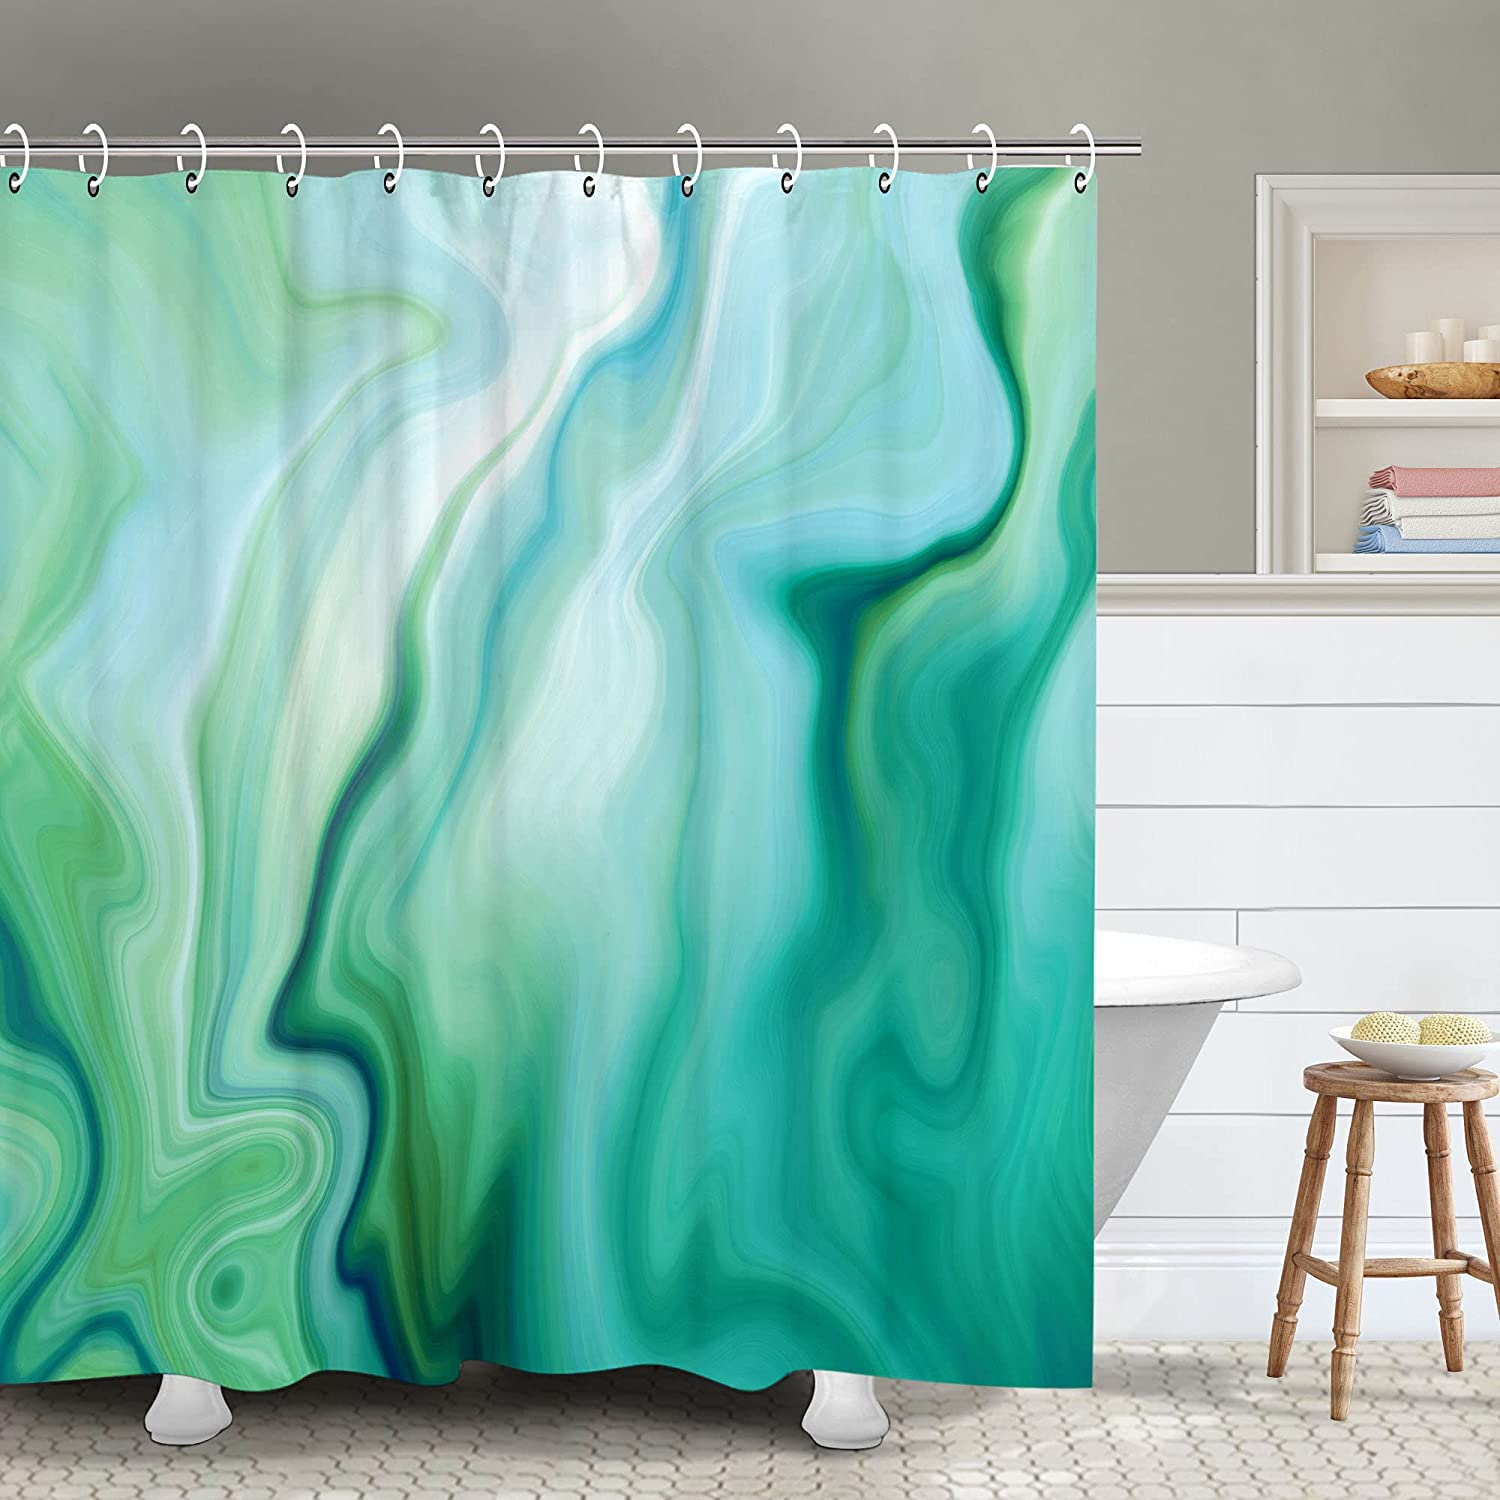 RosieLily Abstract Marble Shower Curtain, Green Ombre Shower Curtains Set with 12 Hooks, Decor Waterproof Bathroom Curtain, 72x72inches